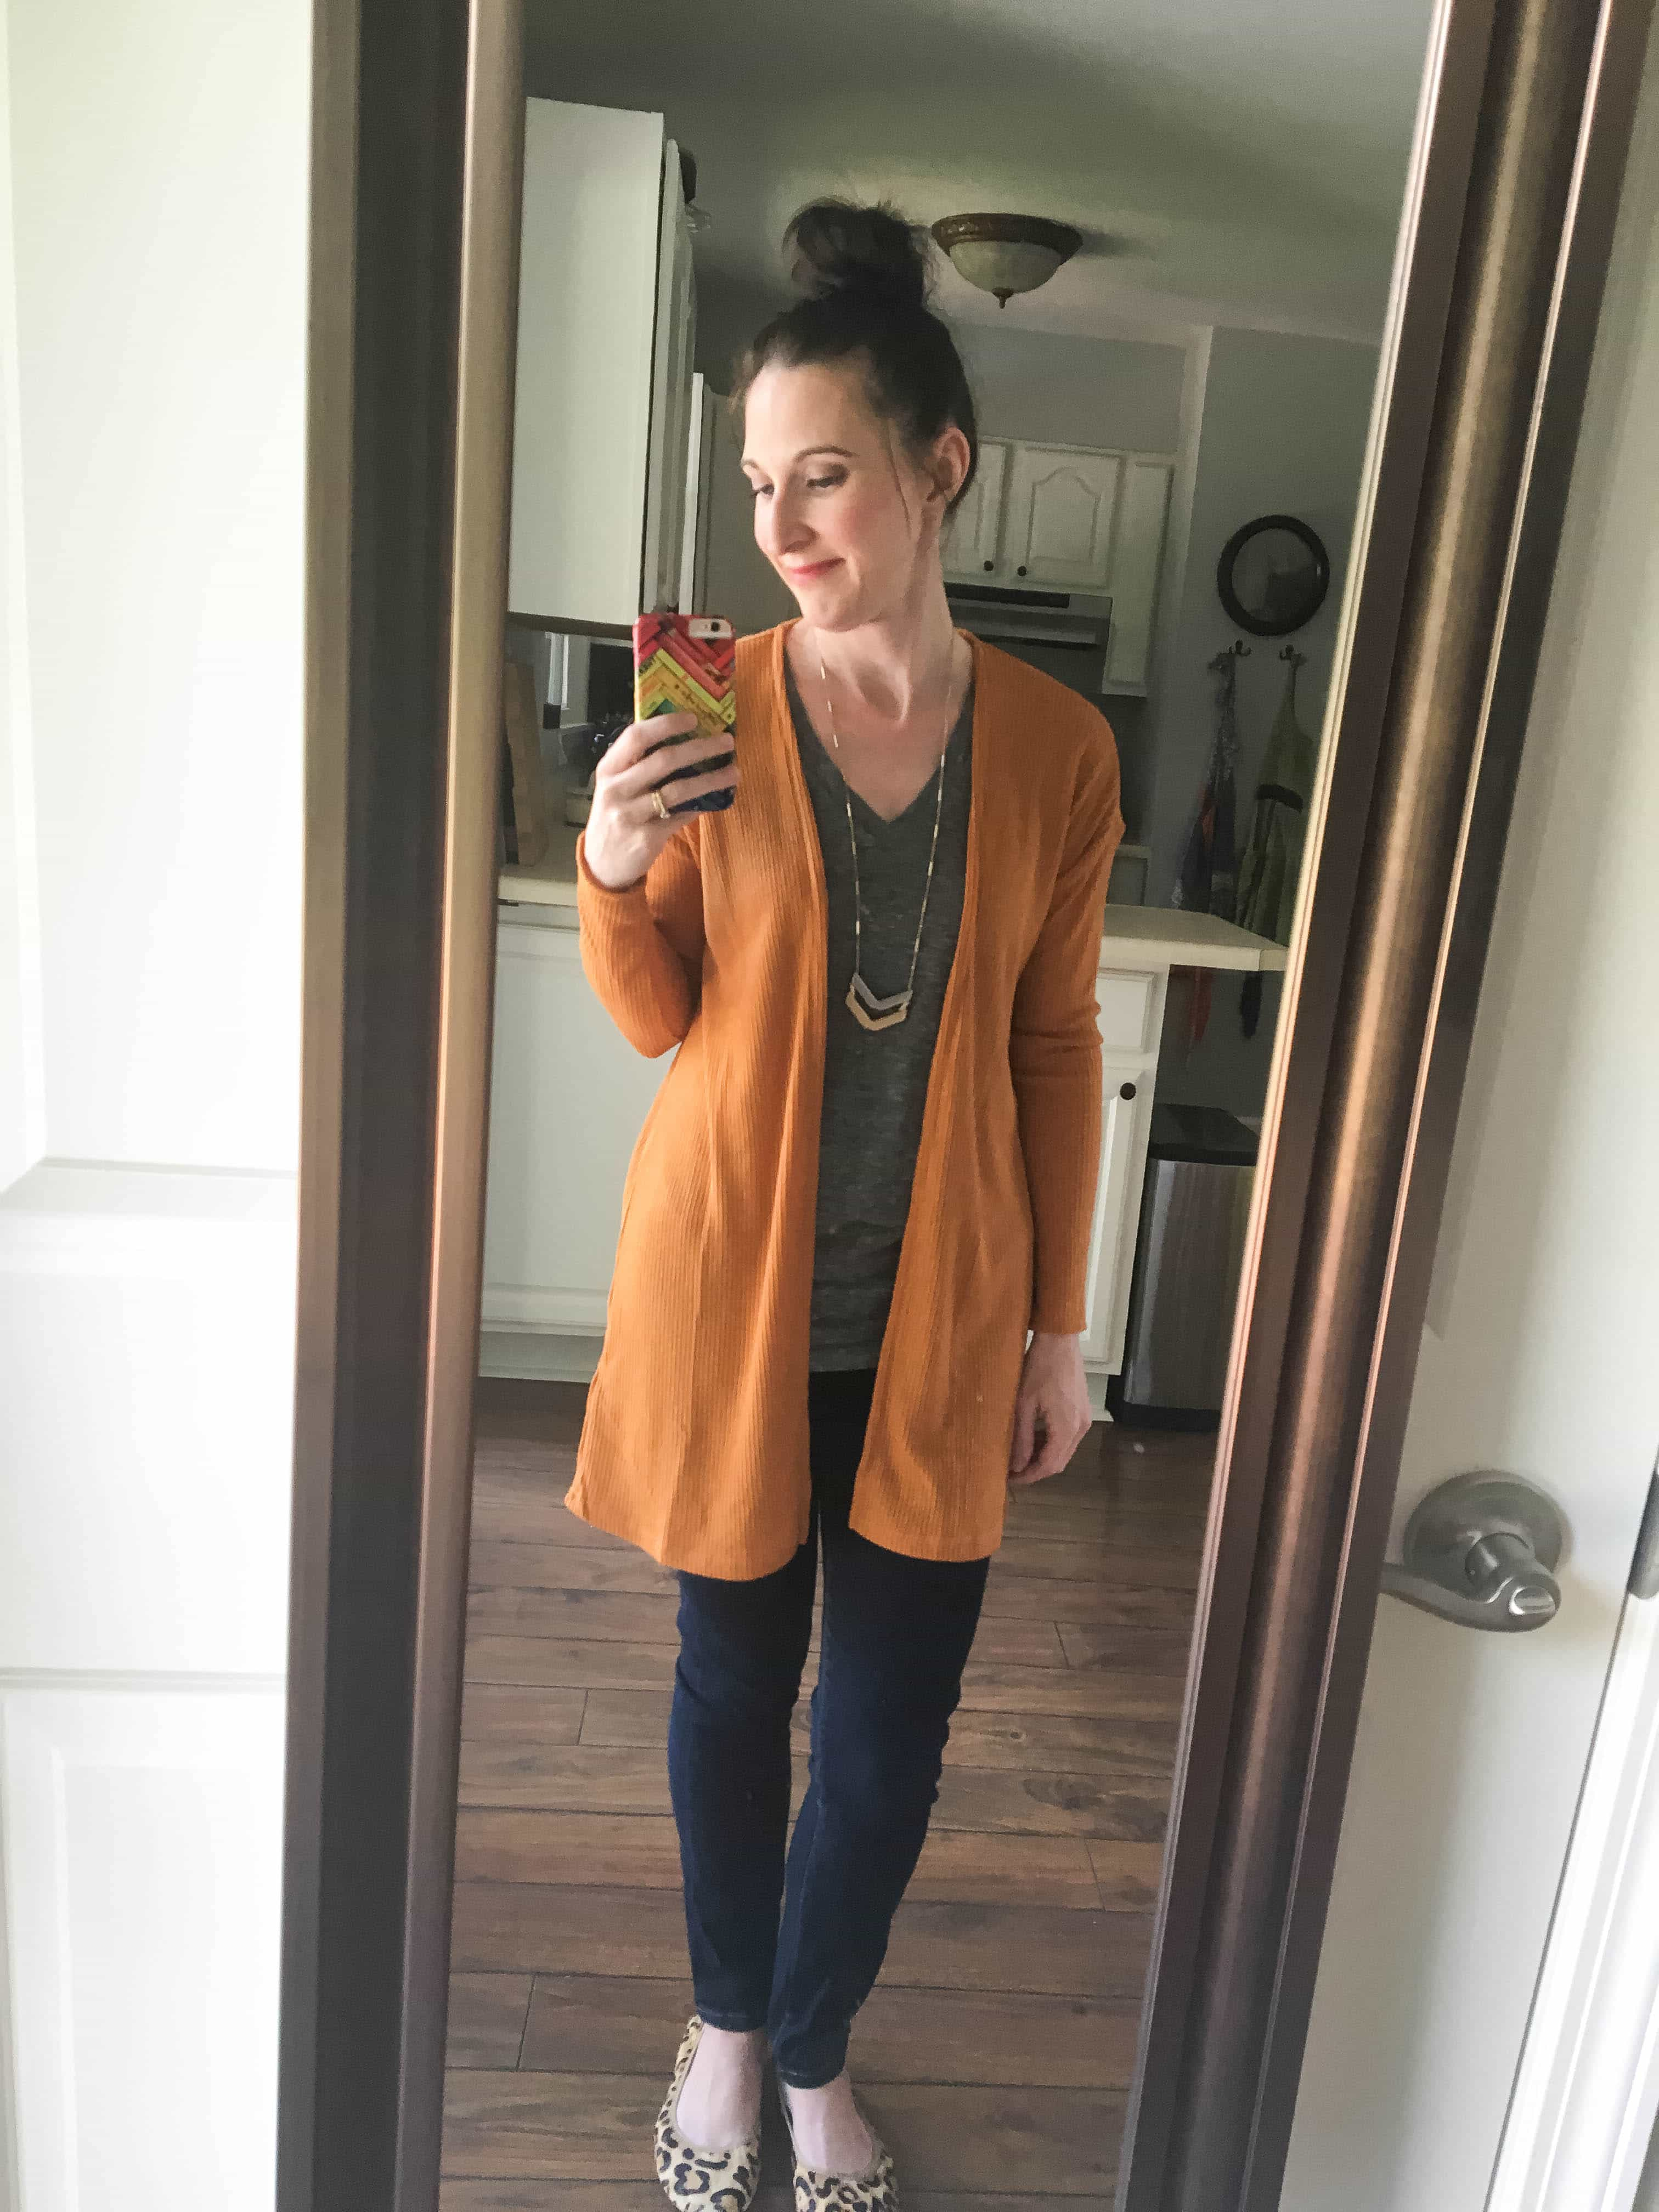 Mustard Cardigan, Chevron Necklace, Gray Tee, & Leopard Print Shoes